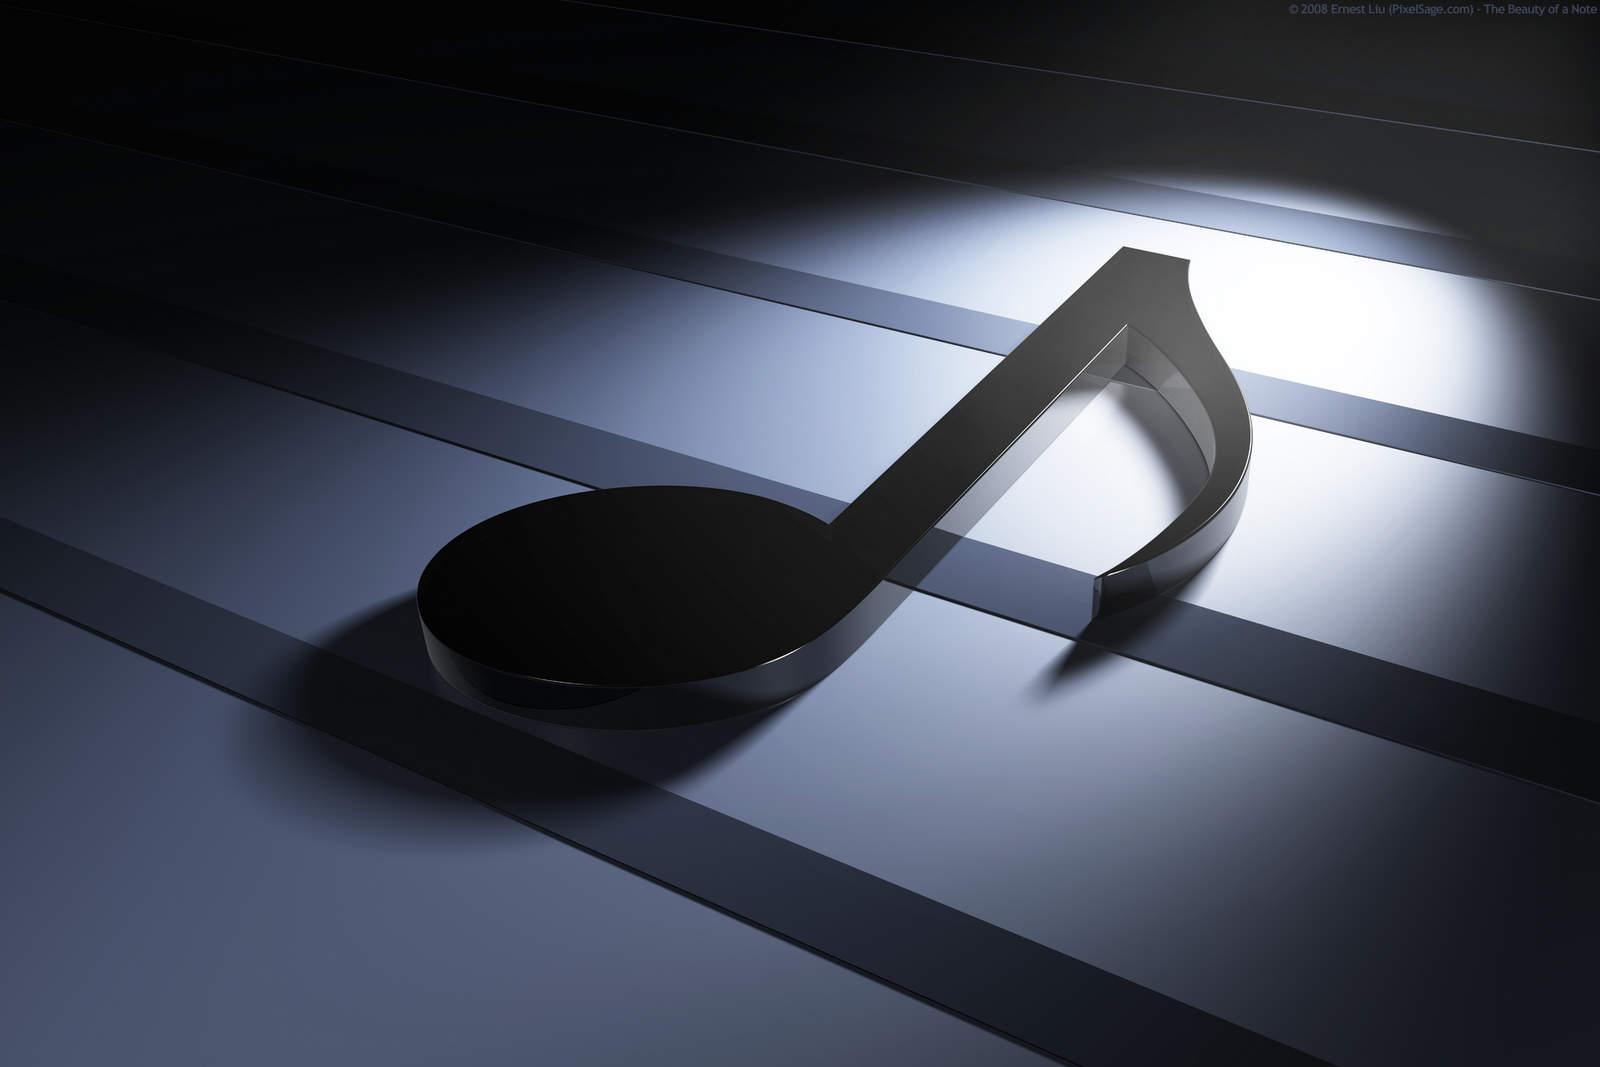 Cool Music Note Wallpapers: Club 4 Buzz: Music Wallpaper